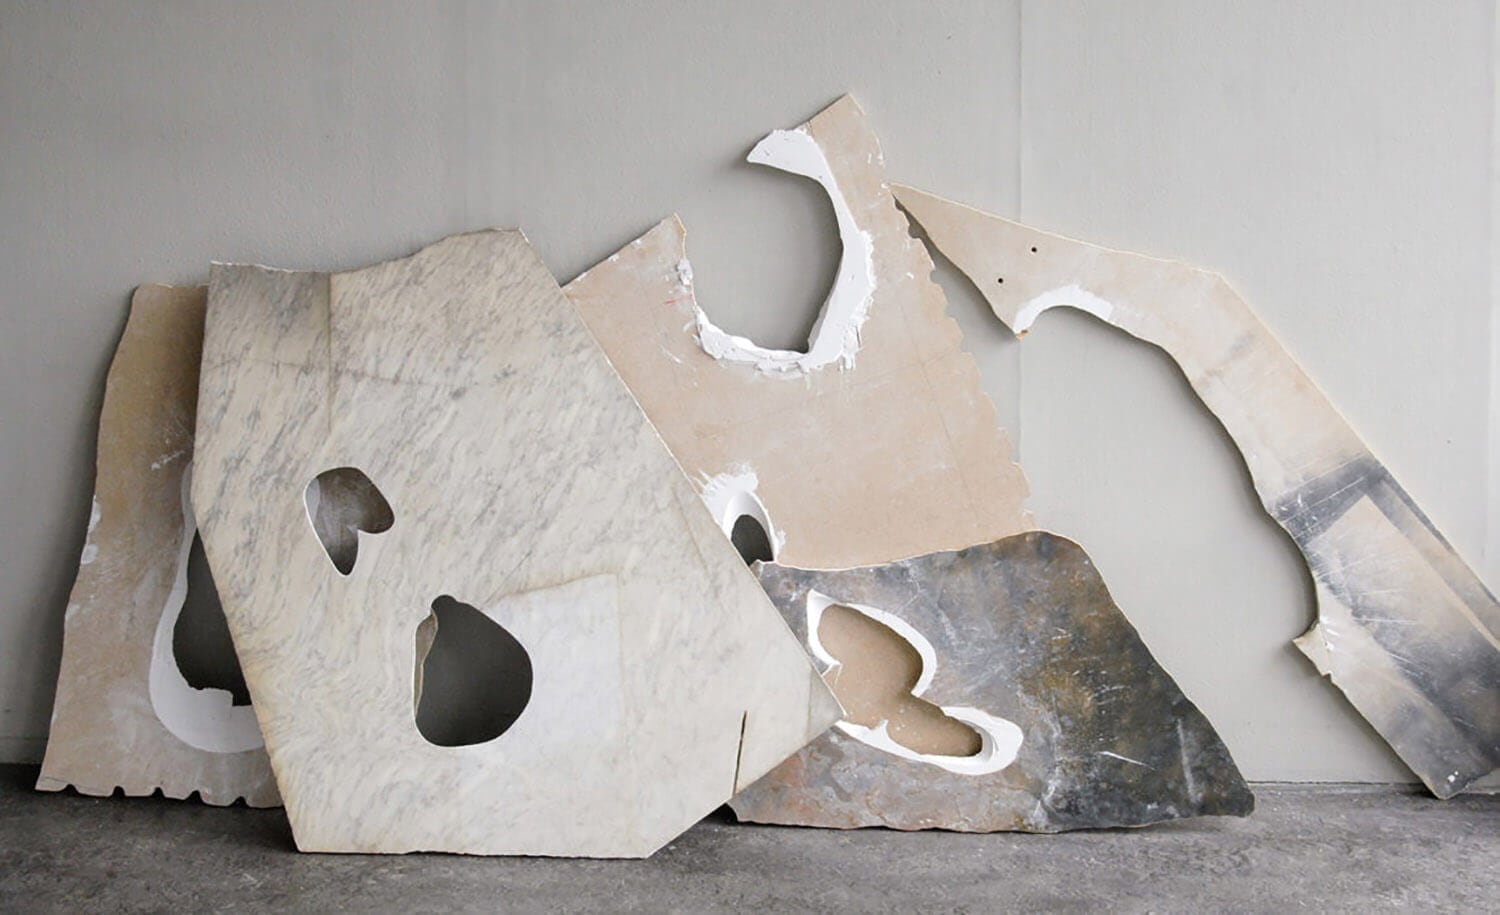 milena naef fleeting parts fy 3 - This Artist Uses Her Body To Create These Marble Installations